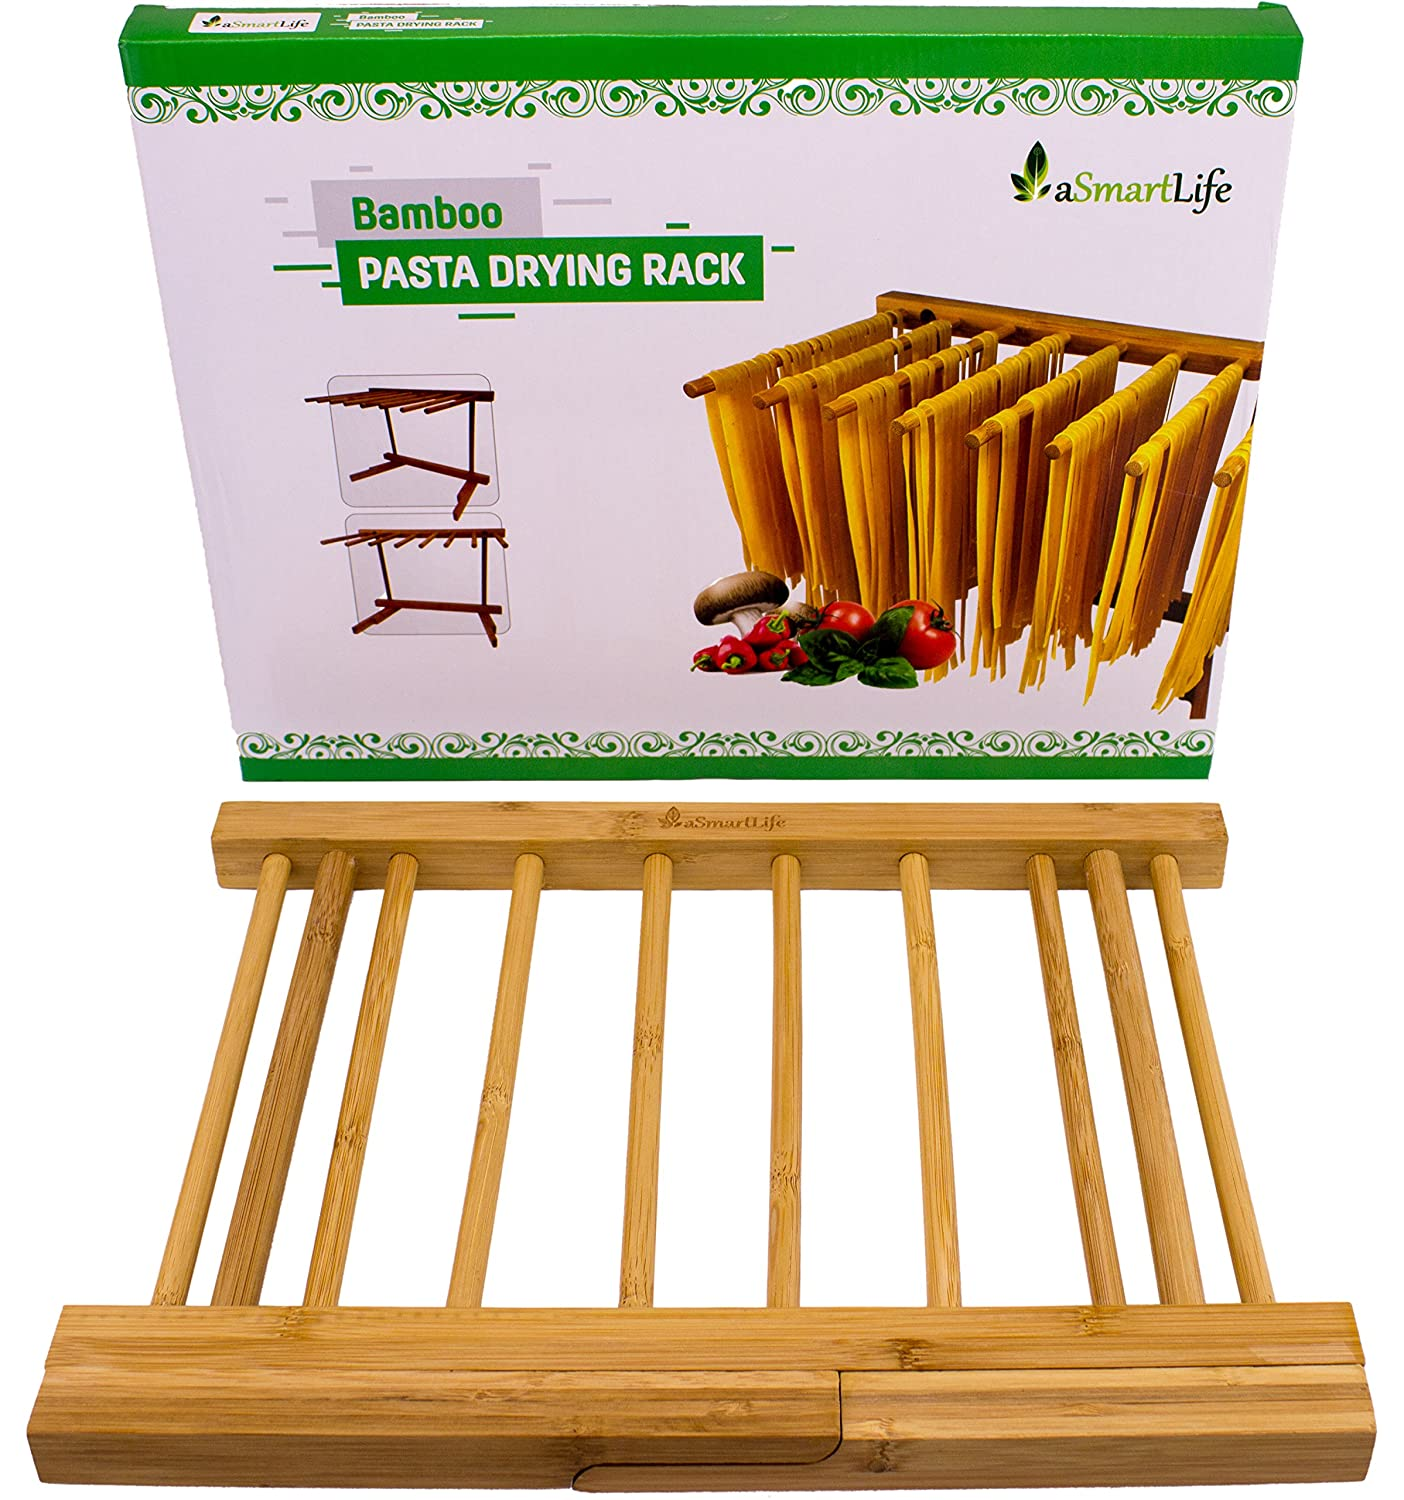 Amazon.com: Bambú Pasta Rack de secado plegable por ...